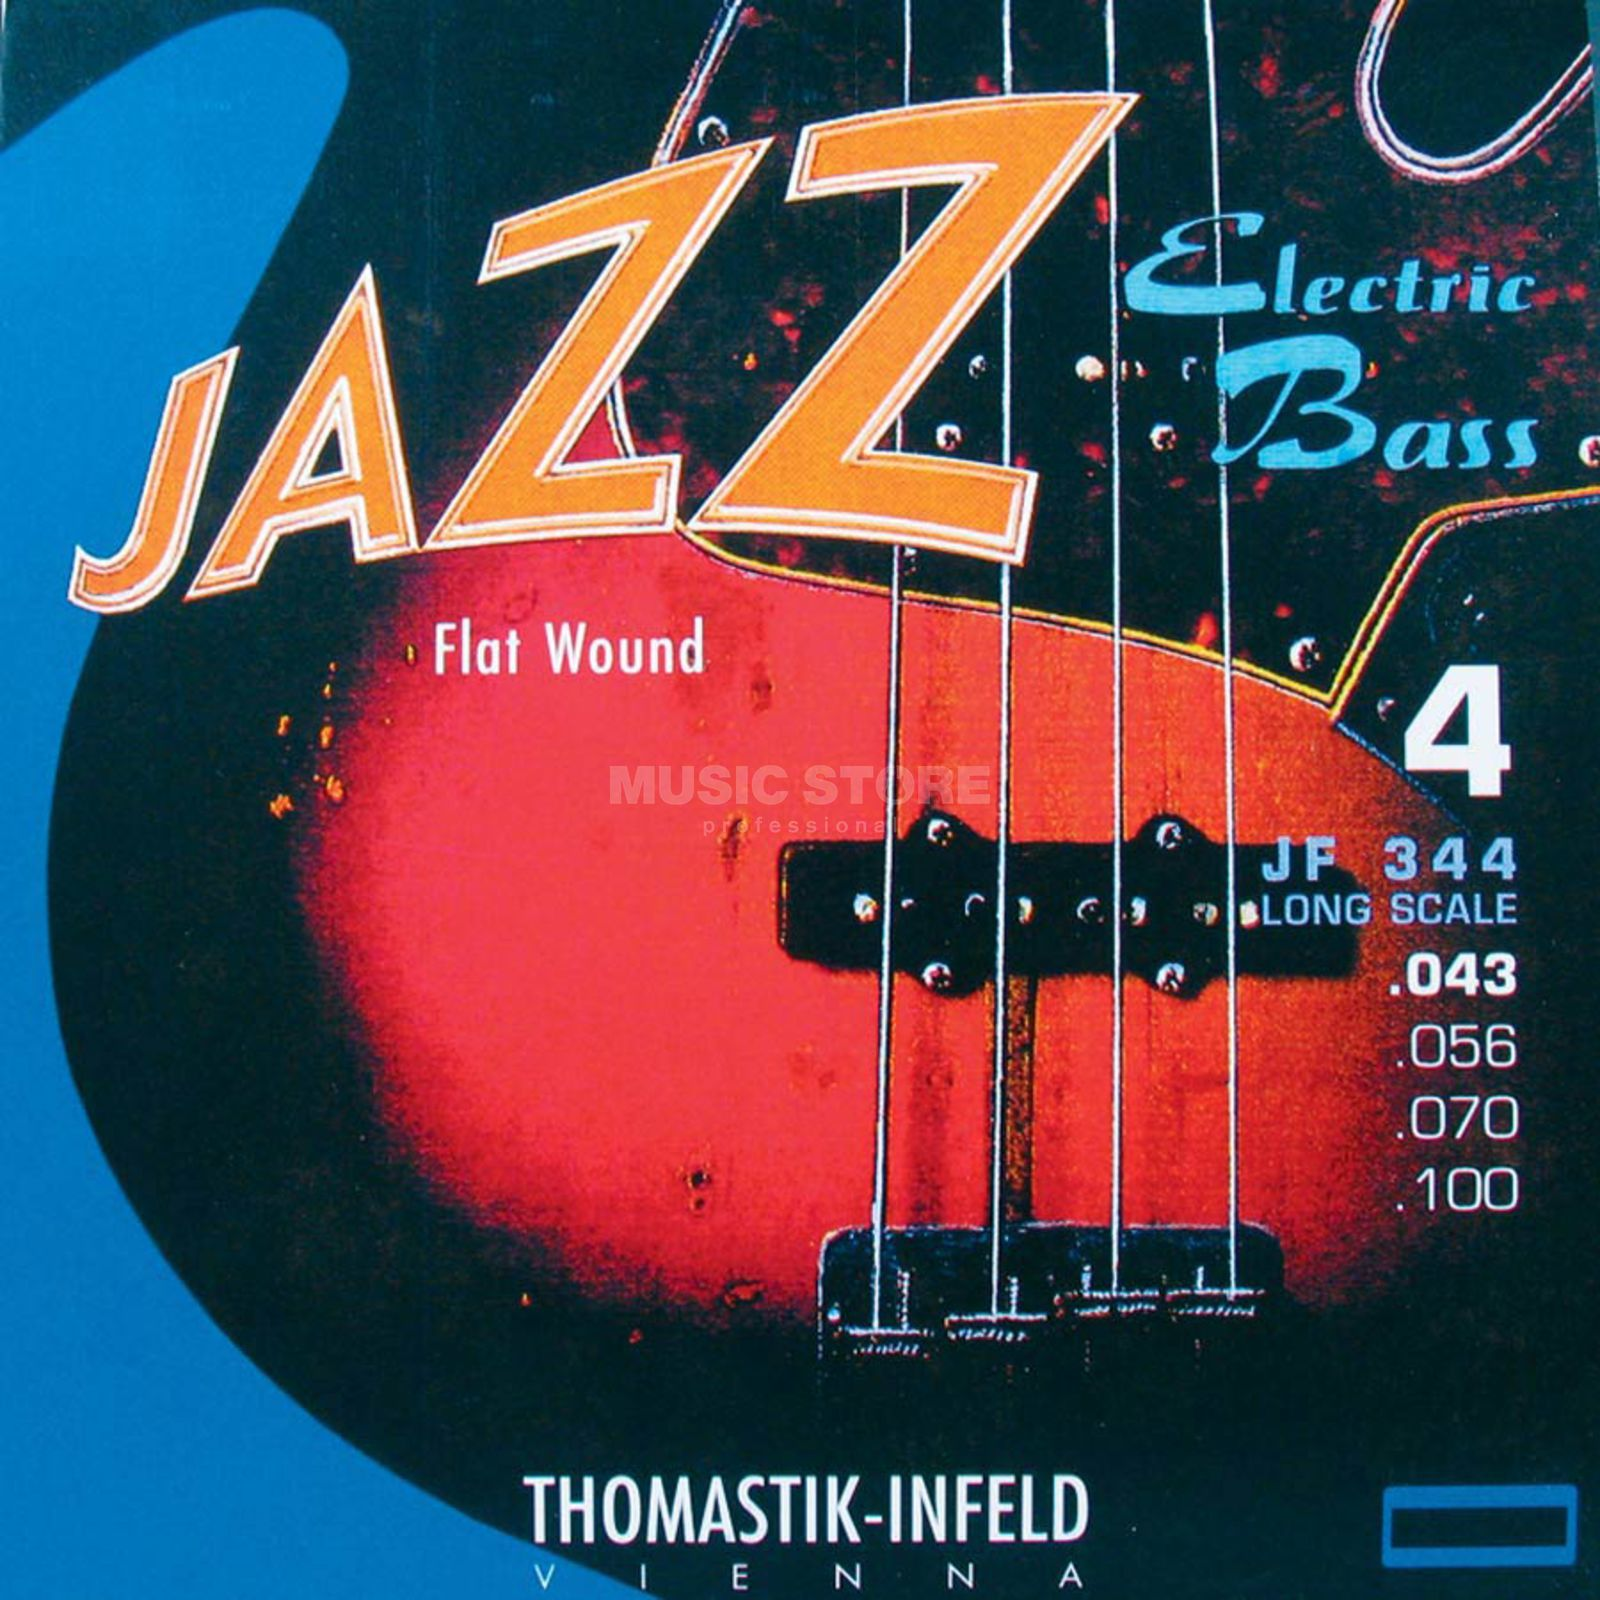 Thomastik 4 Bass Strings JF 344 43-100 Nickel Flat Wound Product Image